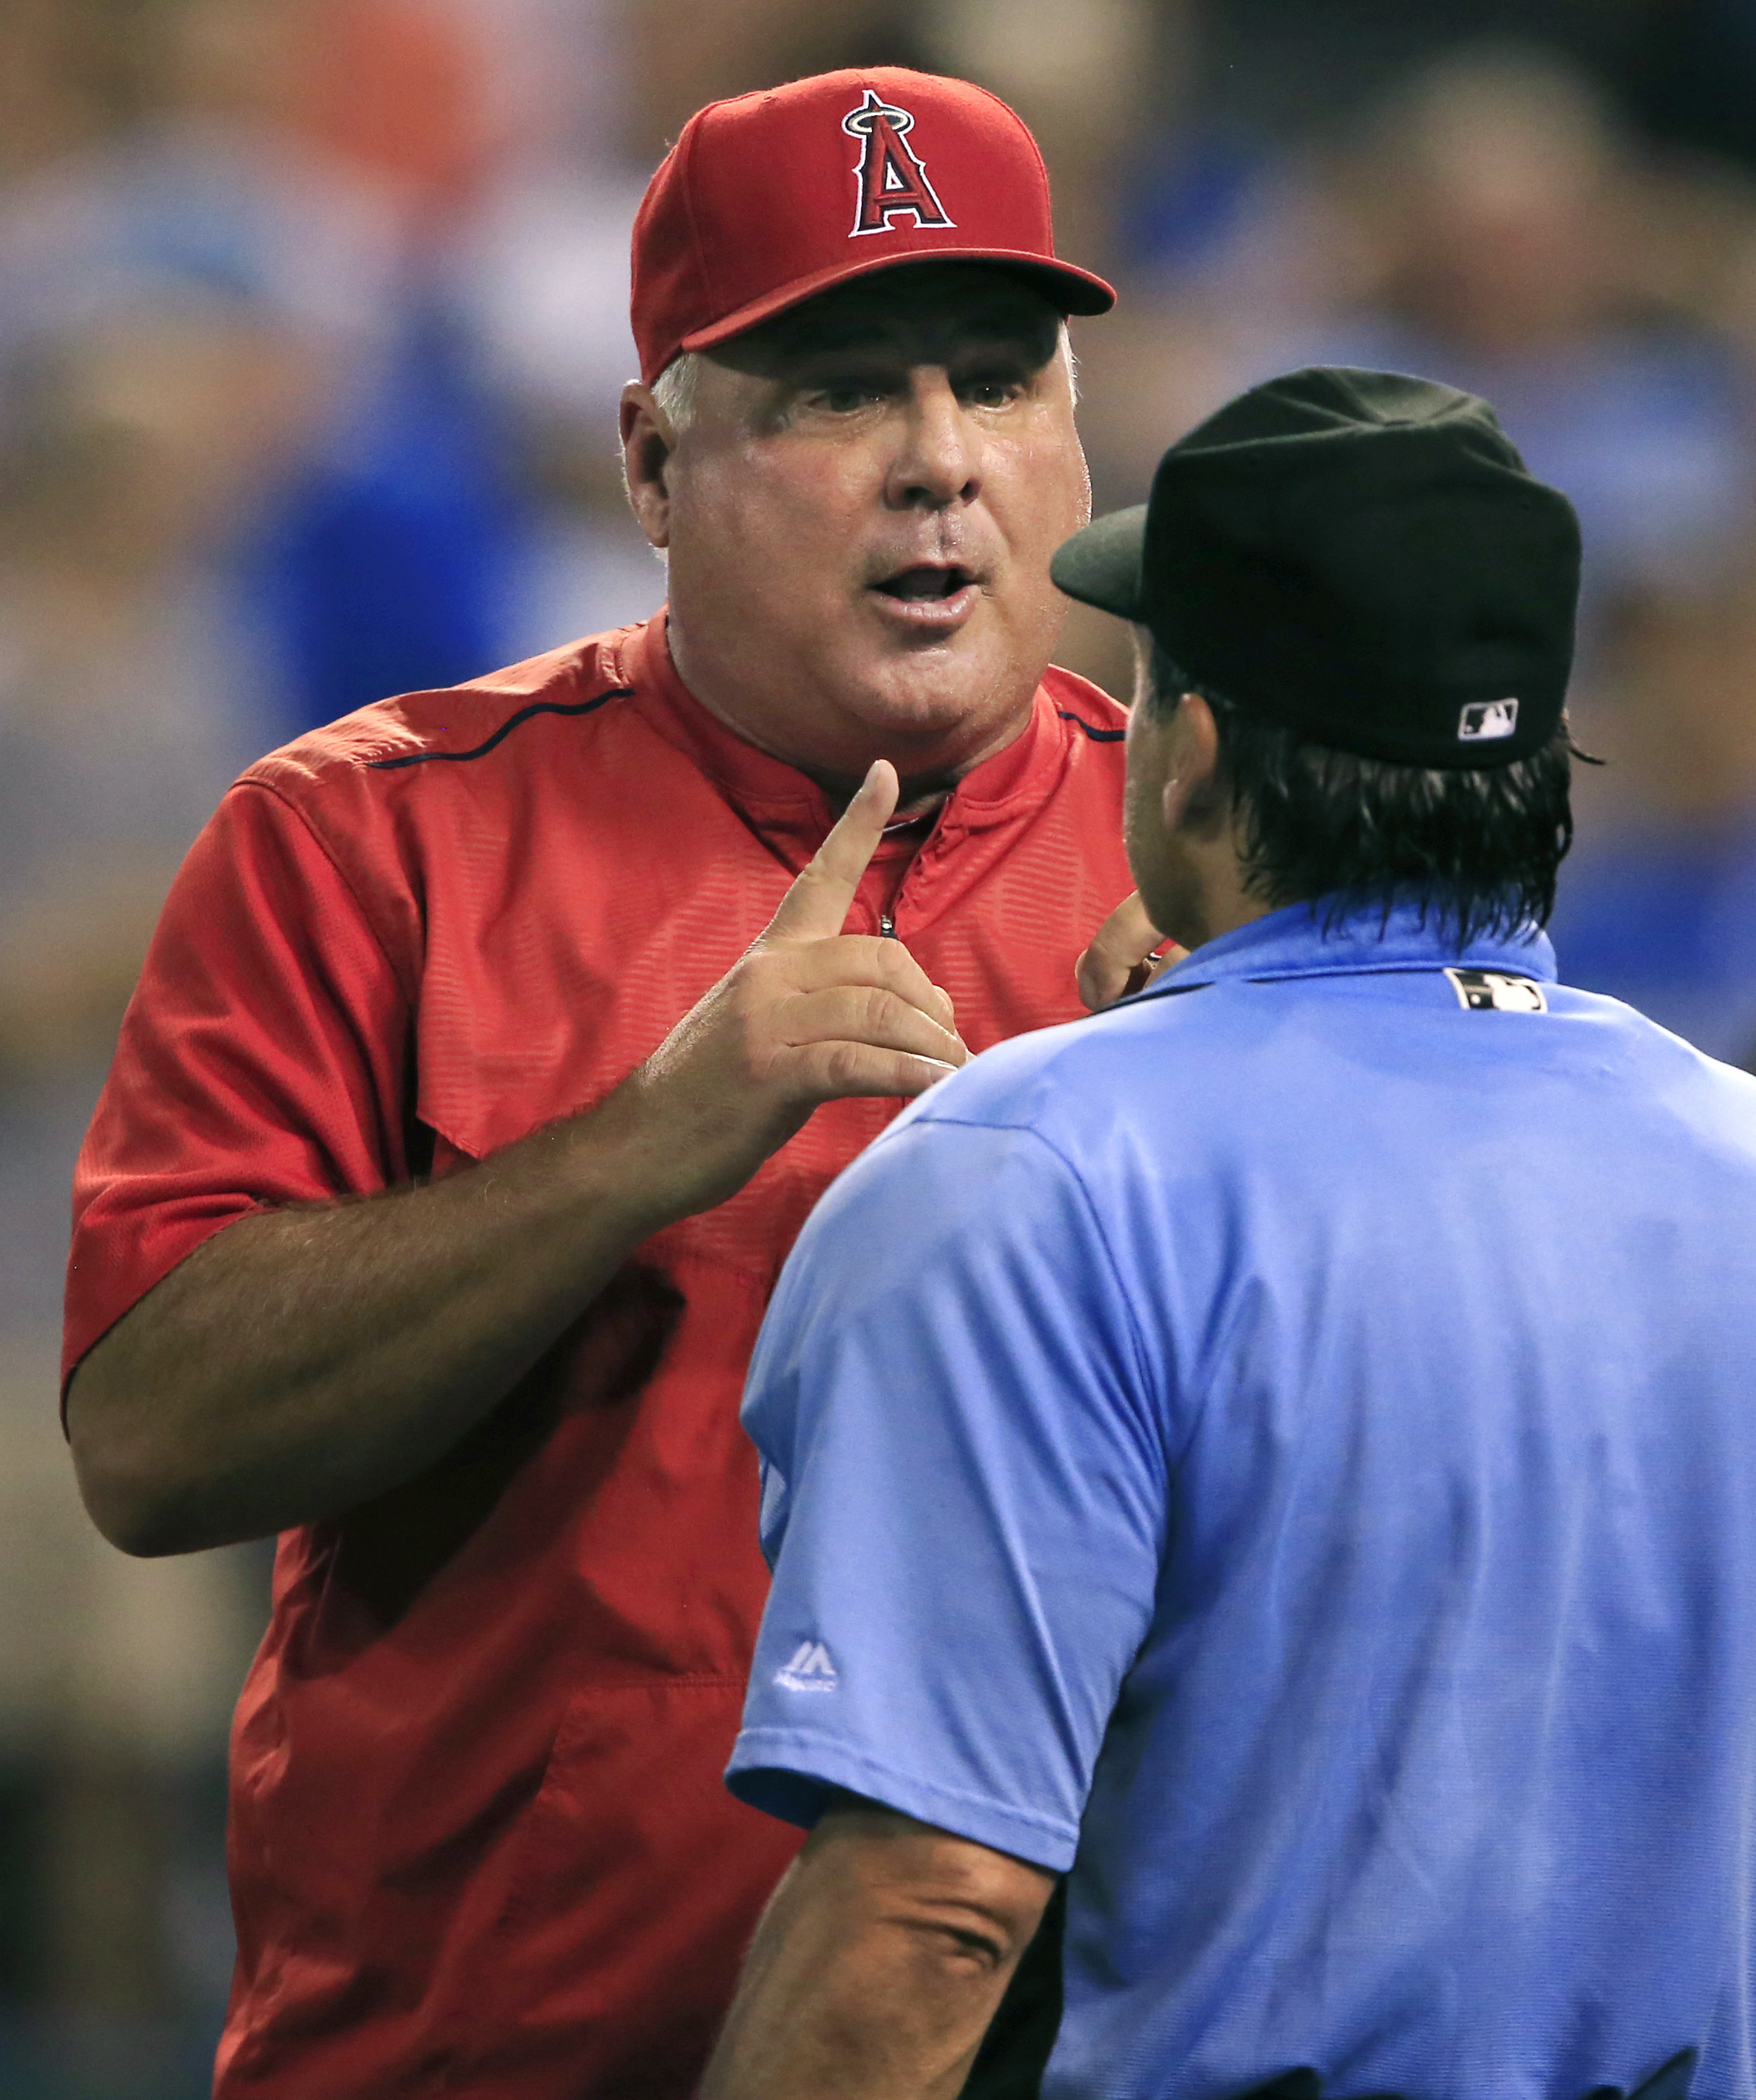 Los Angeles Angels manager Mike Scioscia, back, questions home plate umpire Phil Cuzzi during the seventh inning of a baseball game against the Kansas City Royals at Kauffman Stadium in Kansas City, Mo., Wednesday, July 27, 2016. (AP Photo/Orlin Wagner)